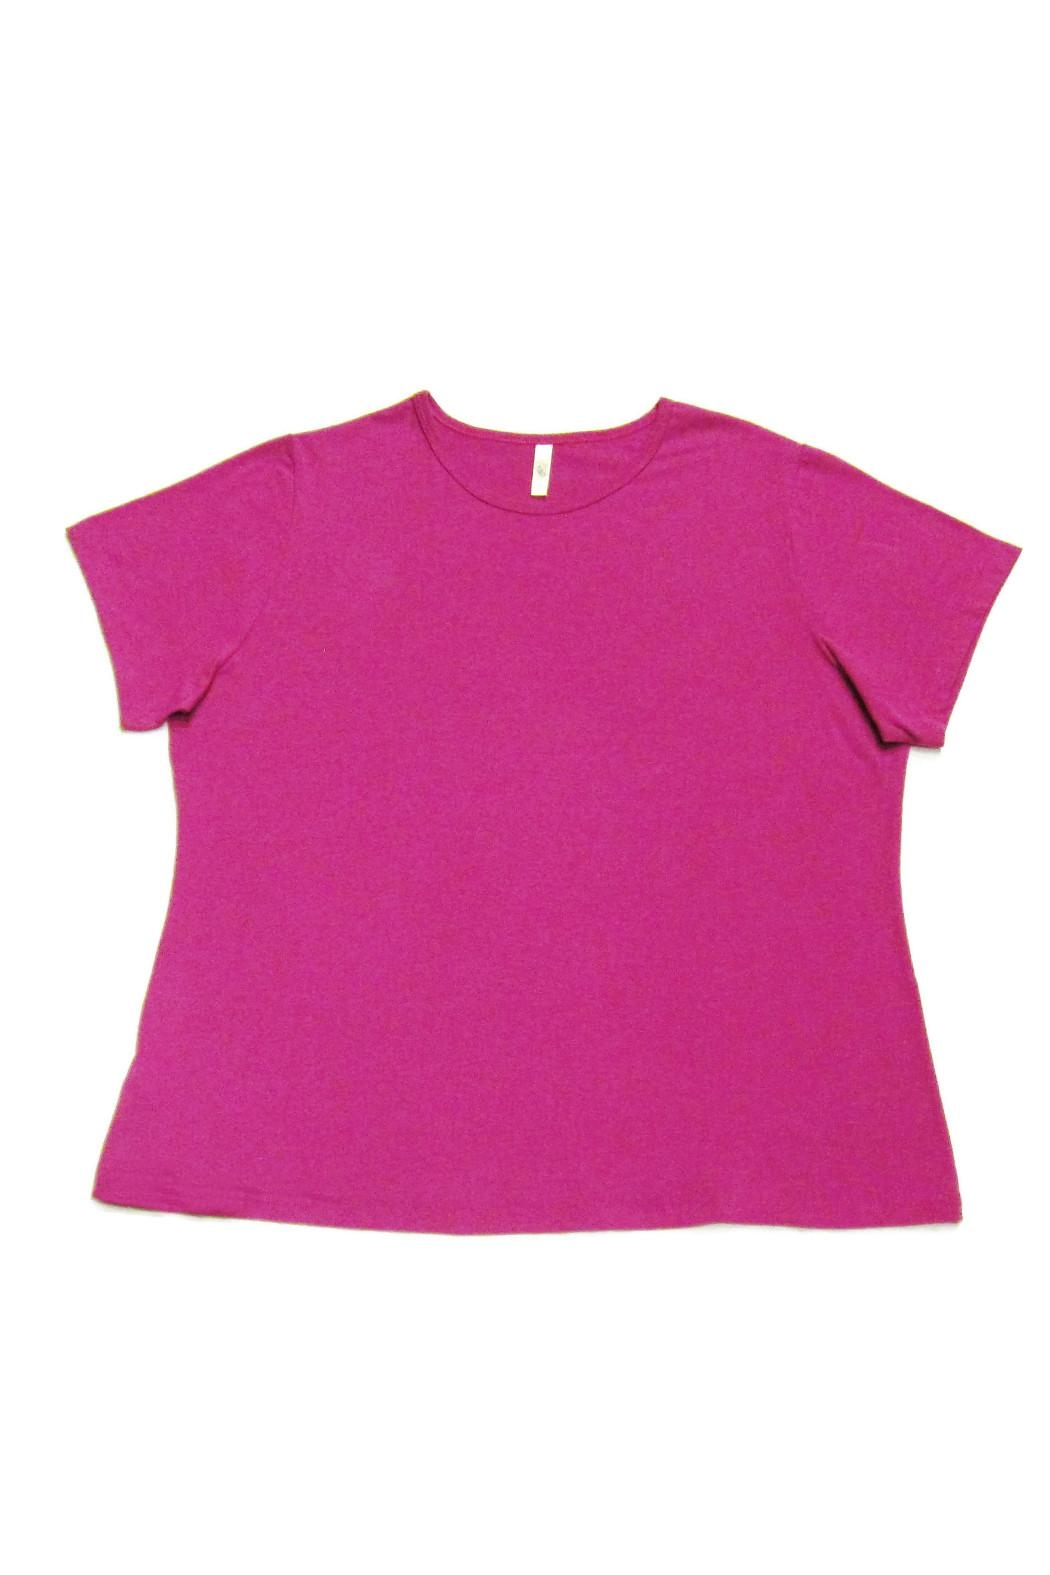 Halo Pink Tee Shirt - Front Cropped Image